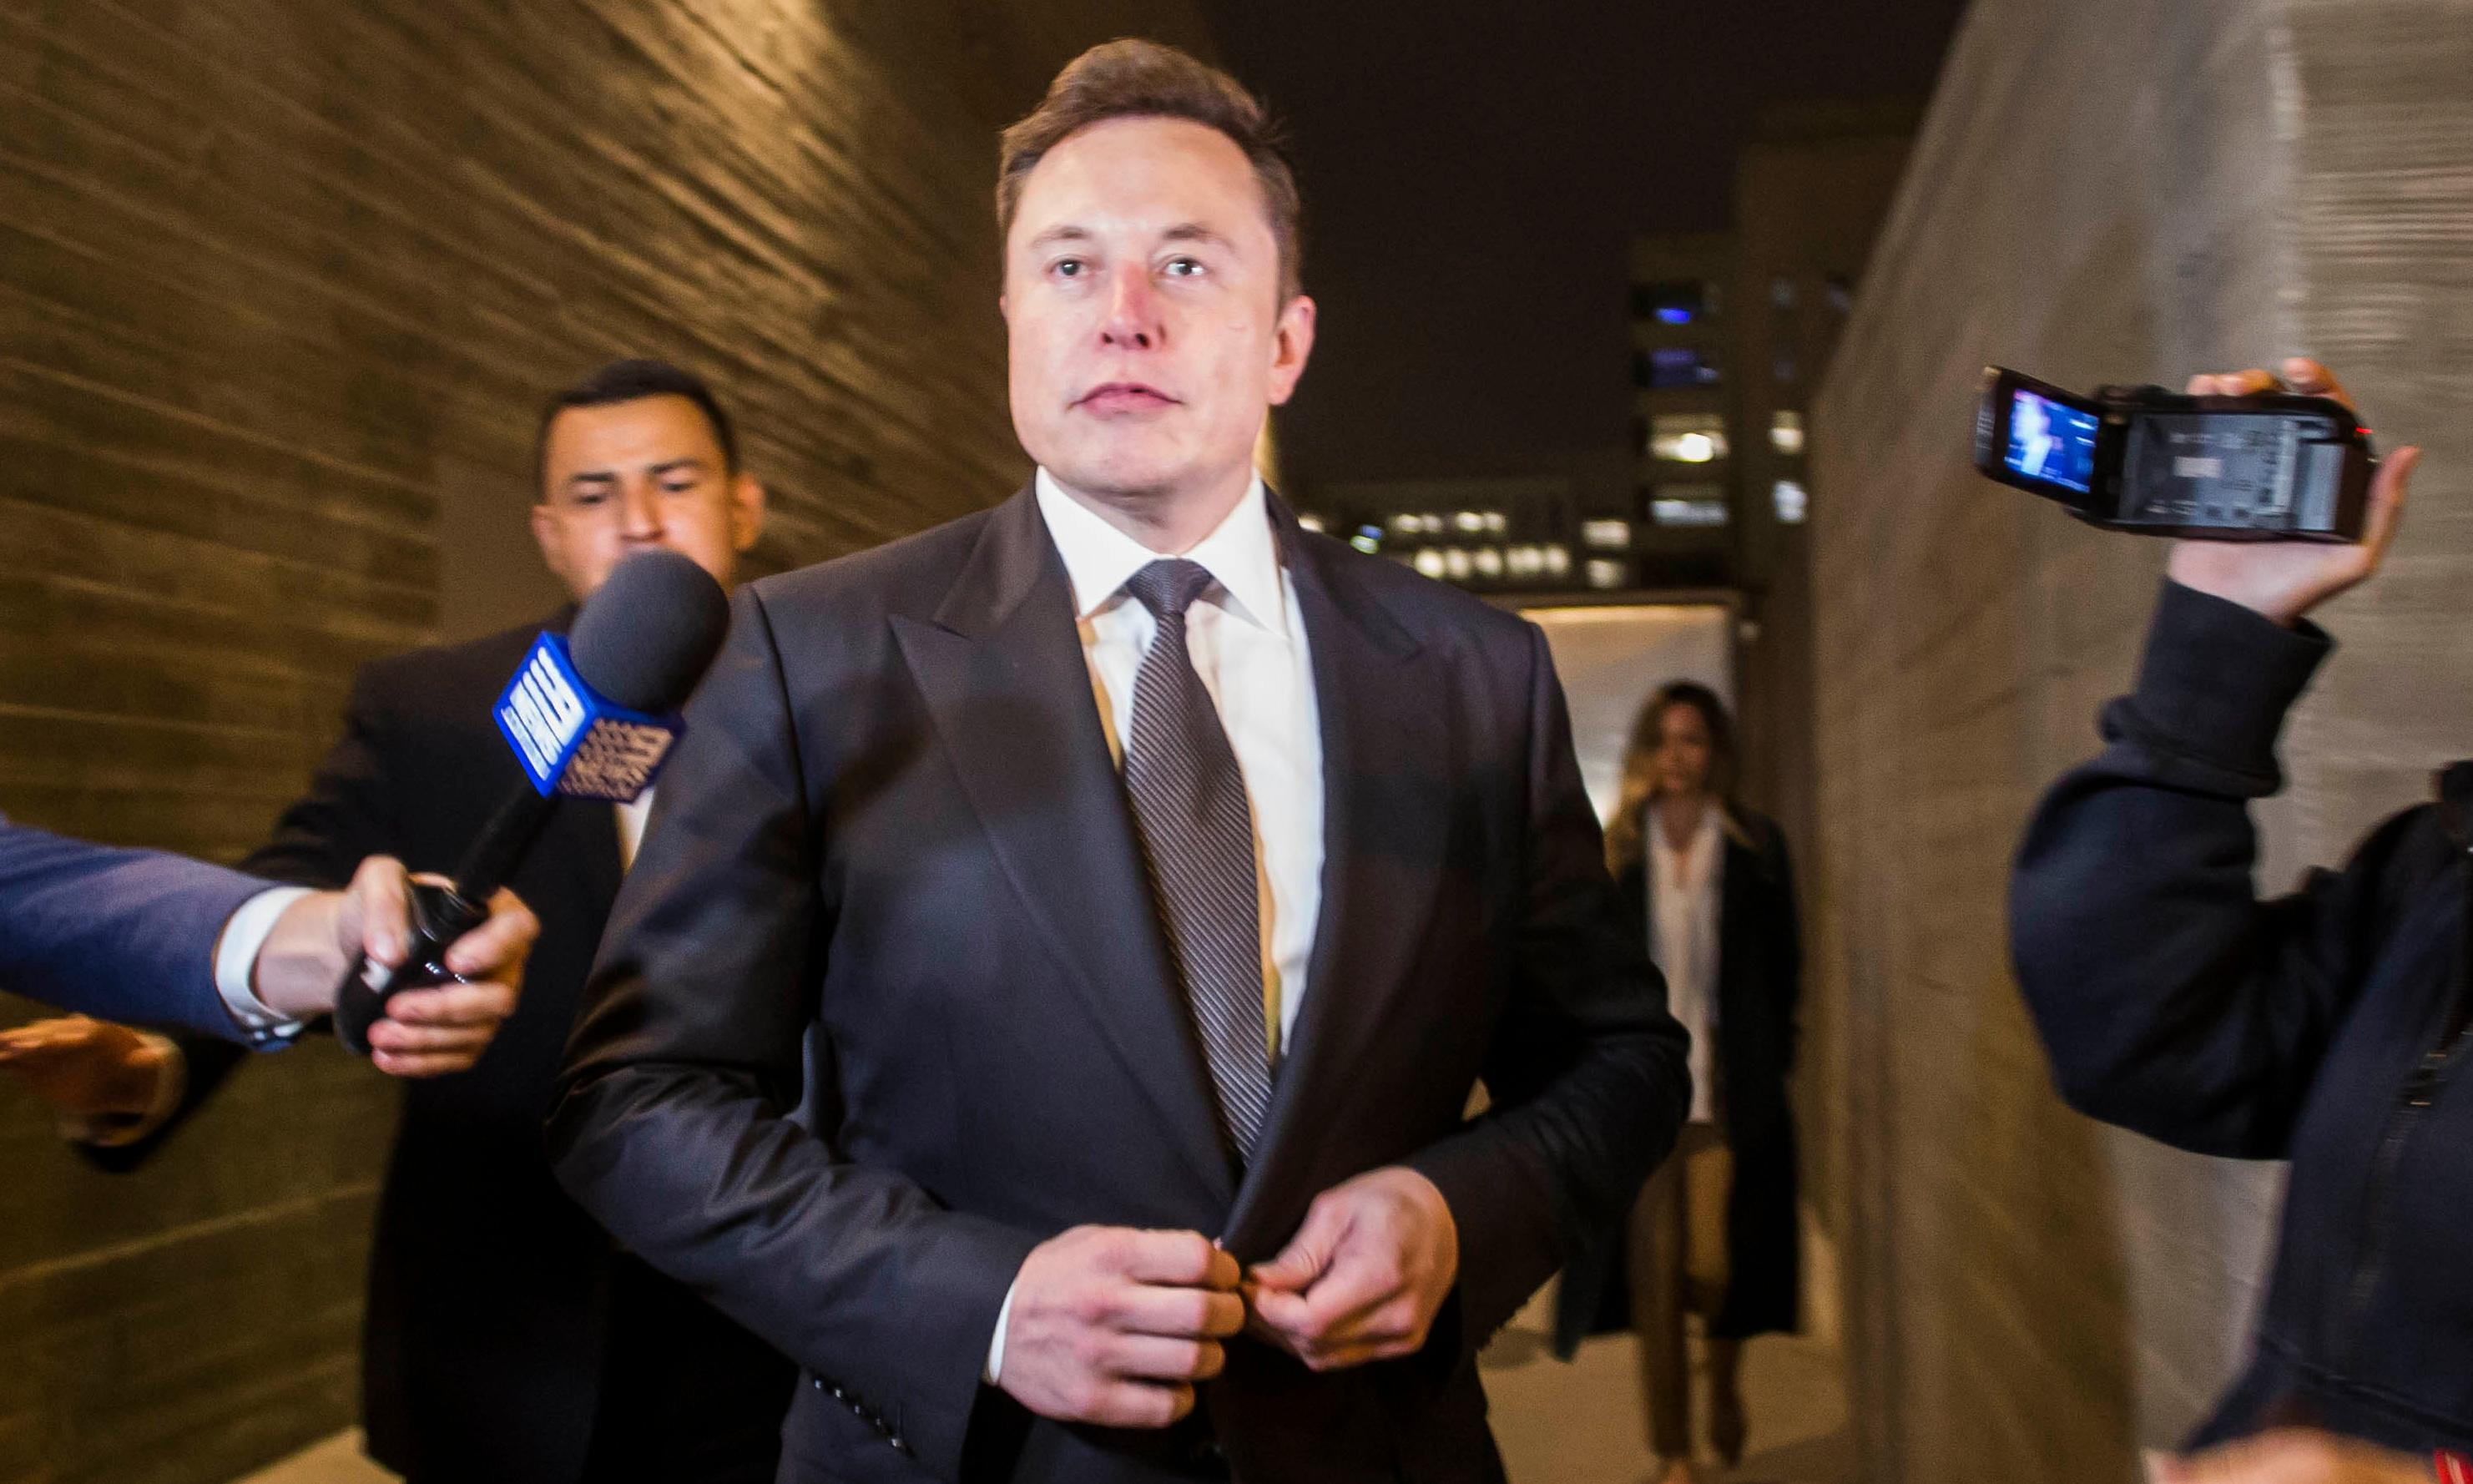 Elon Musk: pedo guy insult was 'not classy' but not meant literally